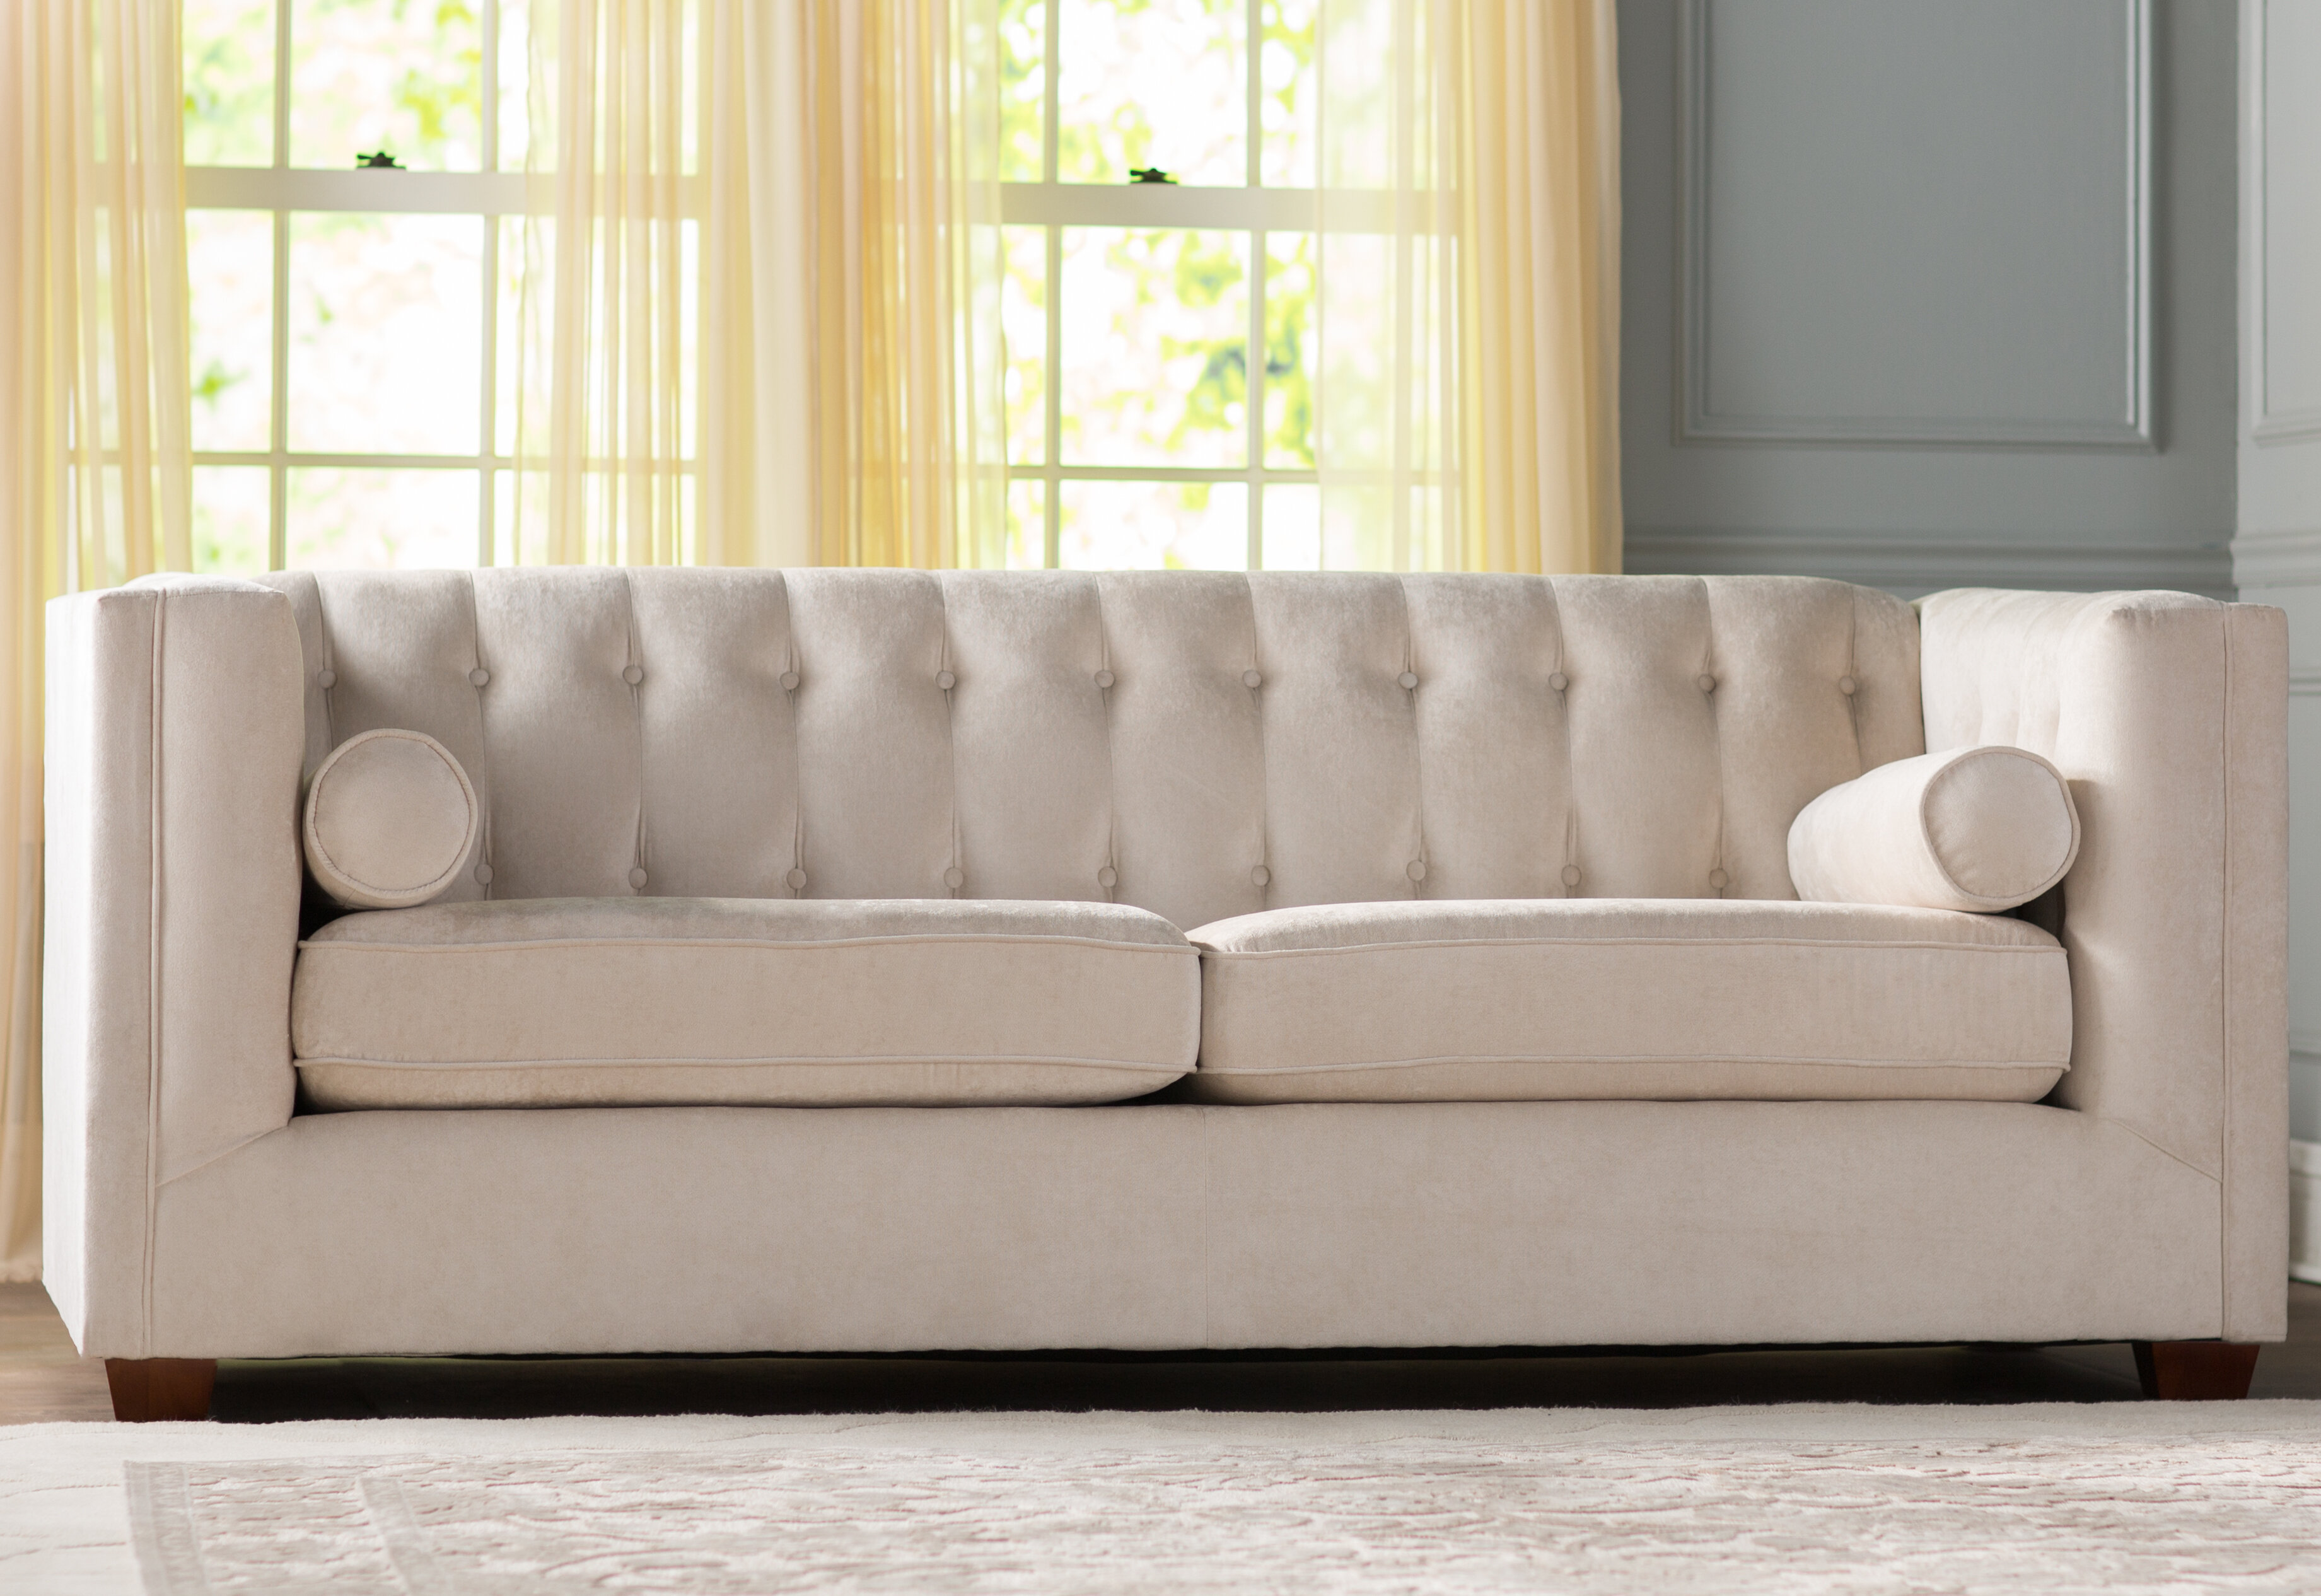 Brilliant Cleaning 101 How To Clean A Sofa Wayfair Caraccident5 Cool Chair Designs And Ideas Caraccident5Info